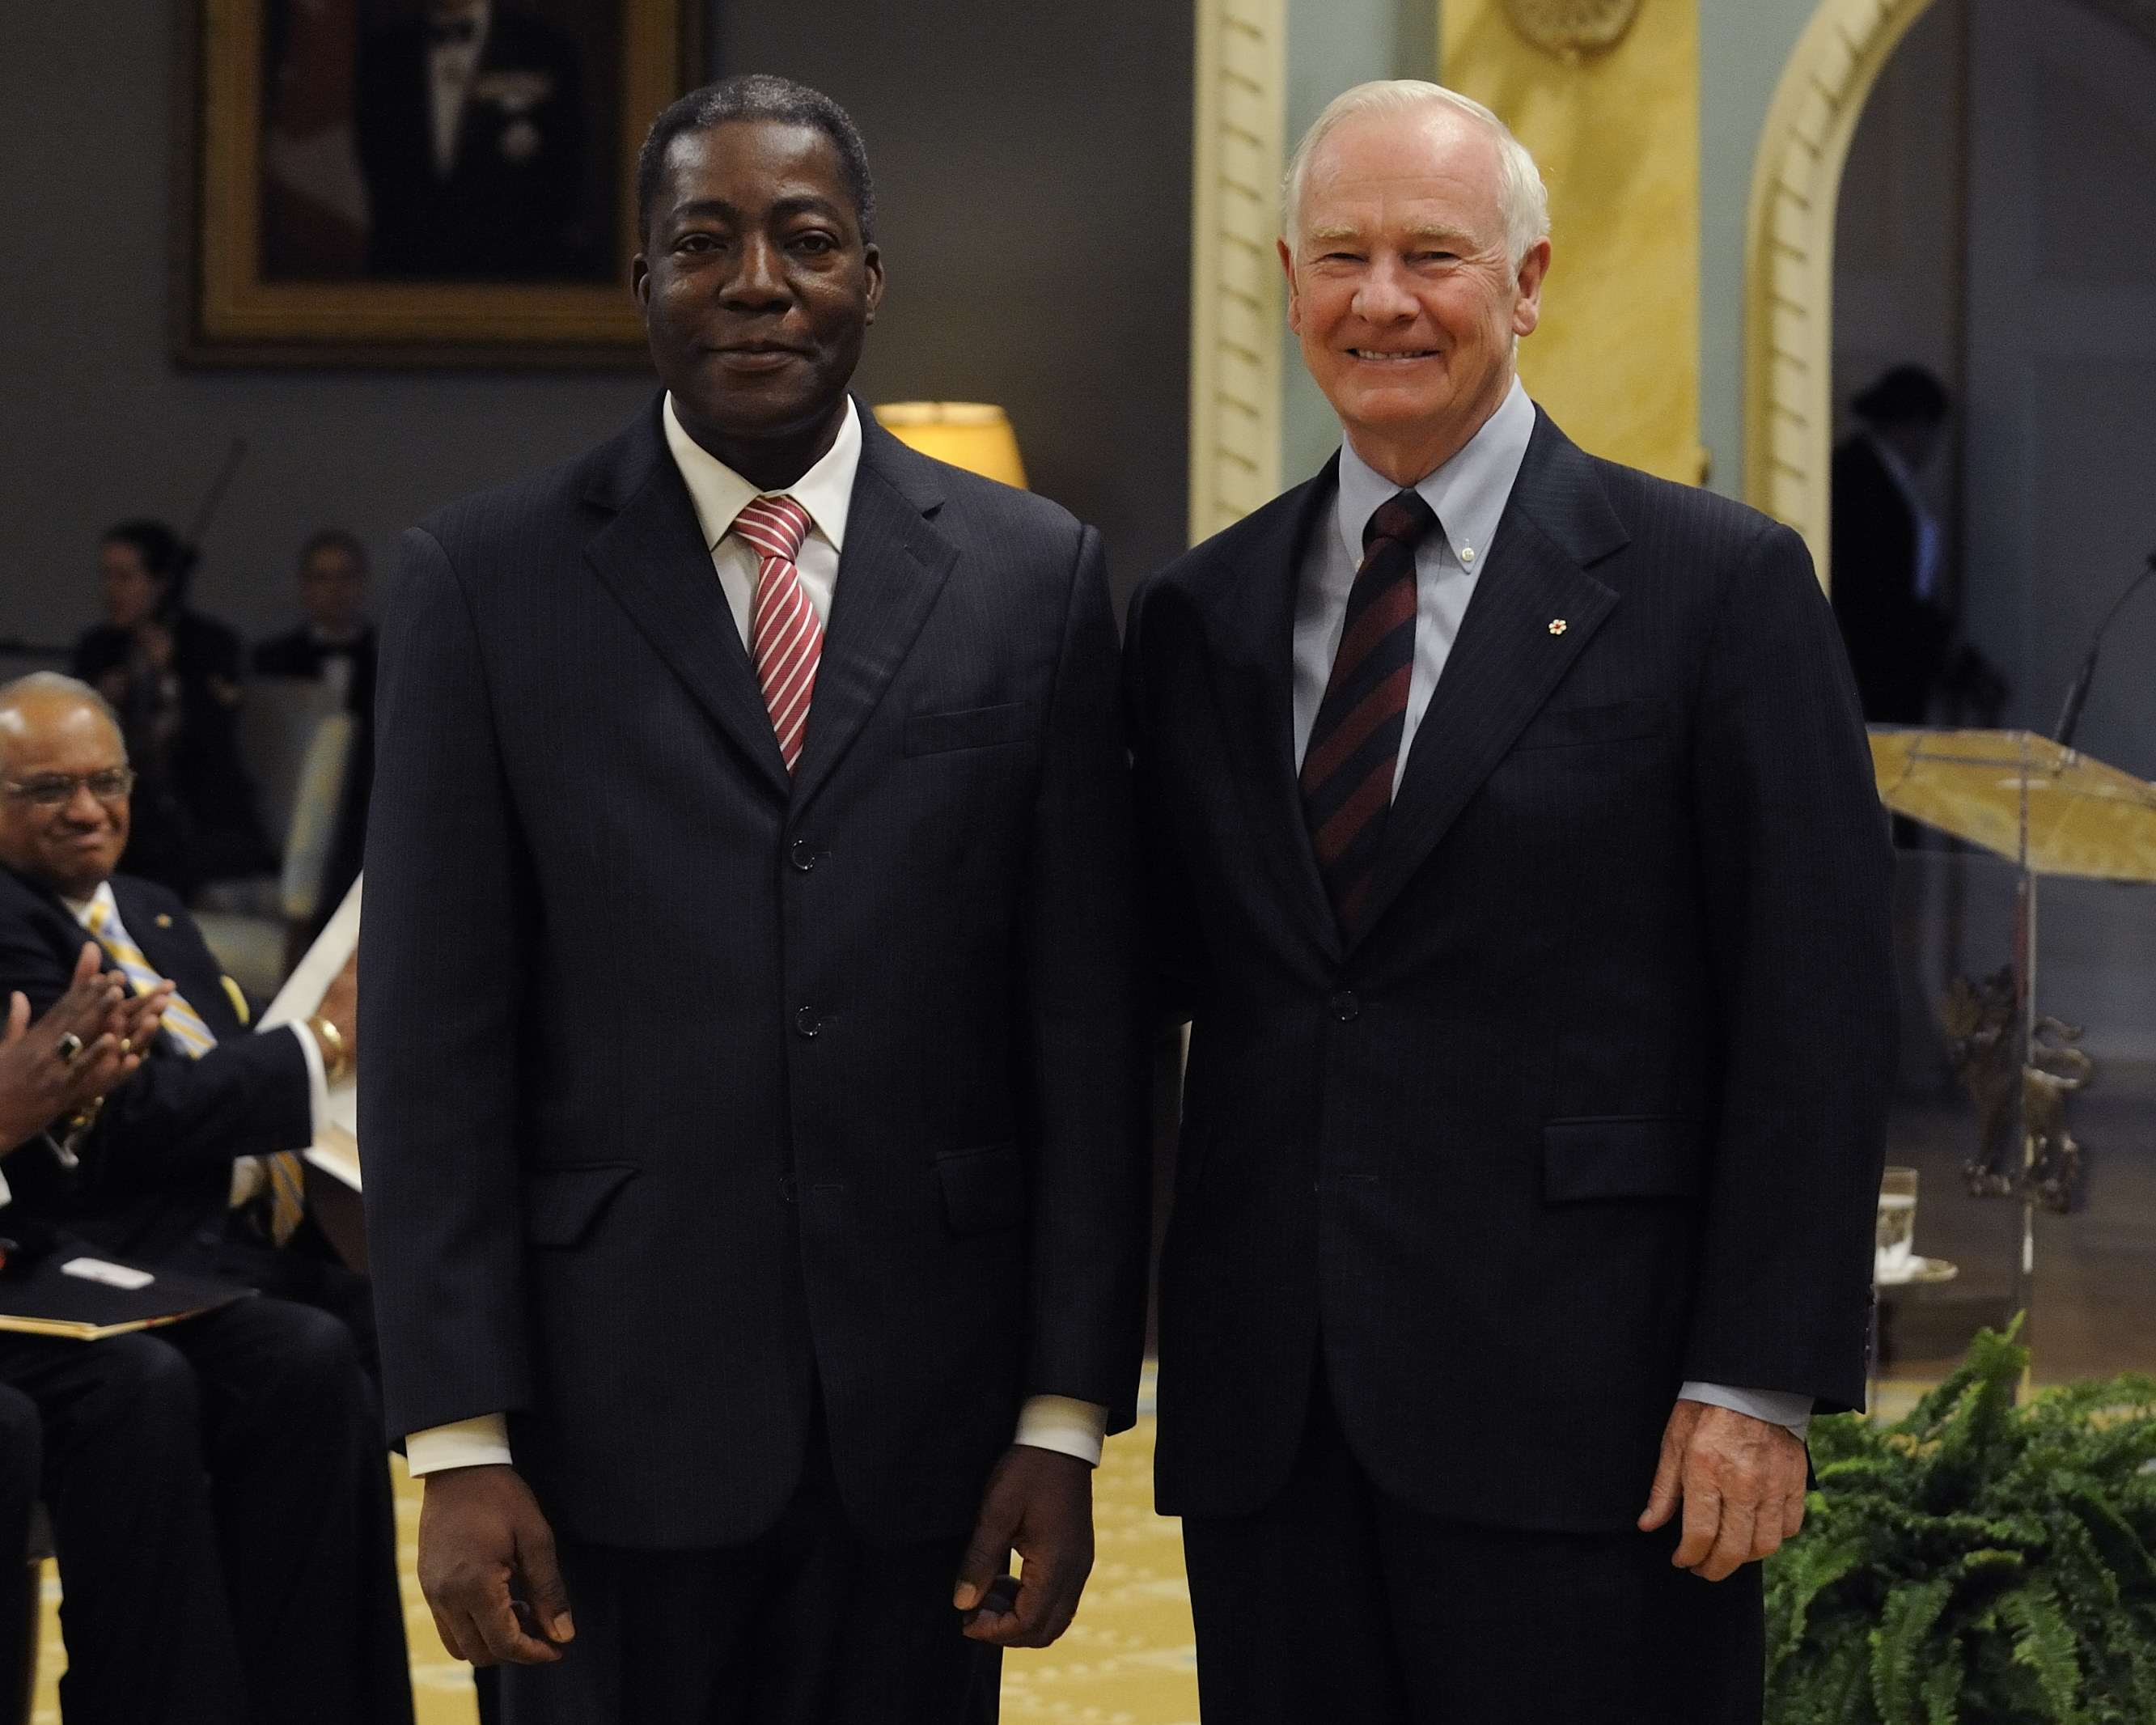 A presentation of credentials from five new heads of mission took place on March 30, 2012, at Rideau Hall. On this occasion, the Governor General first received the credentials of His Excellency Amadou Adrien Koné, Ambassador of Burkina Faso.